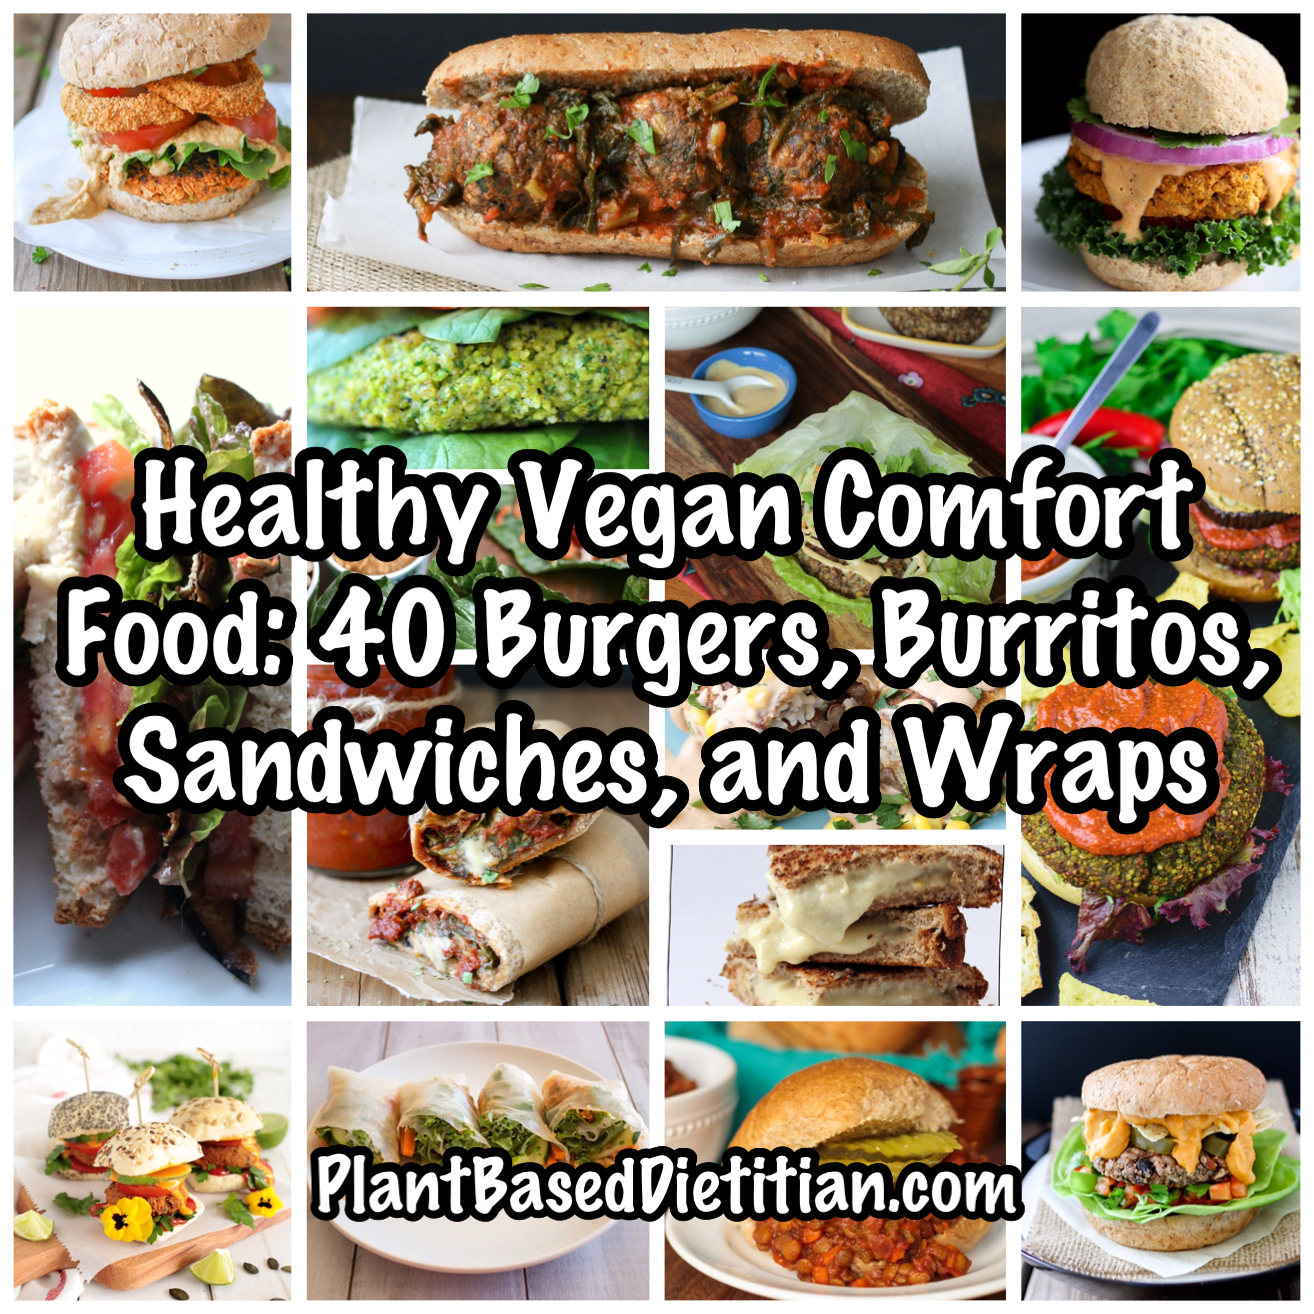 Burgers, Burritos, Sandwiches, Wraps Pic